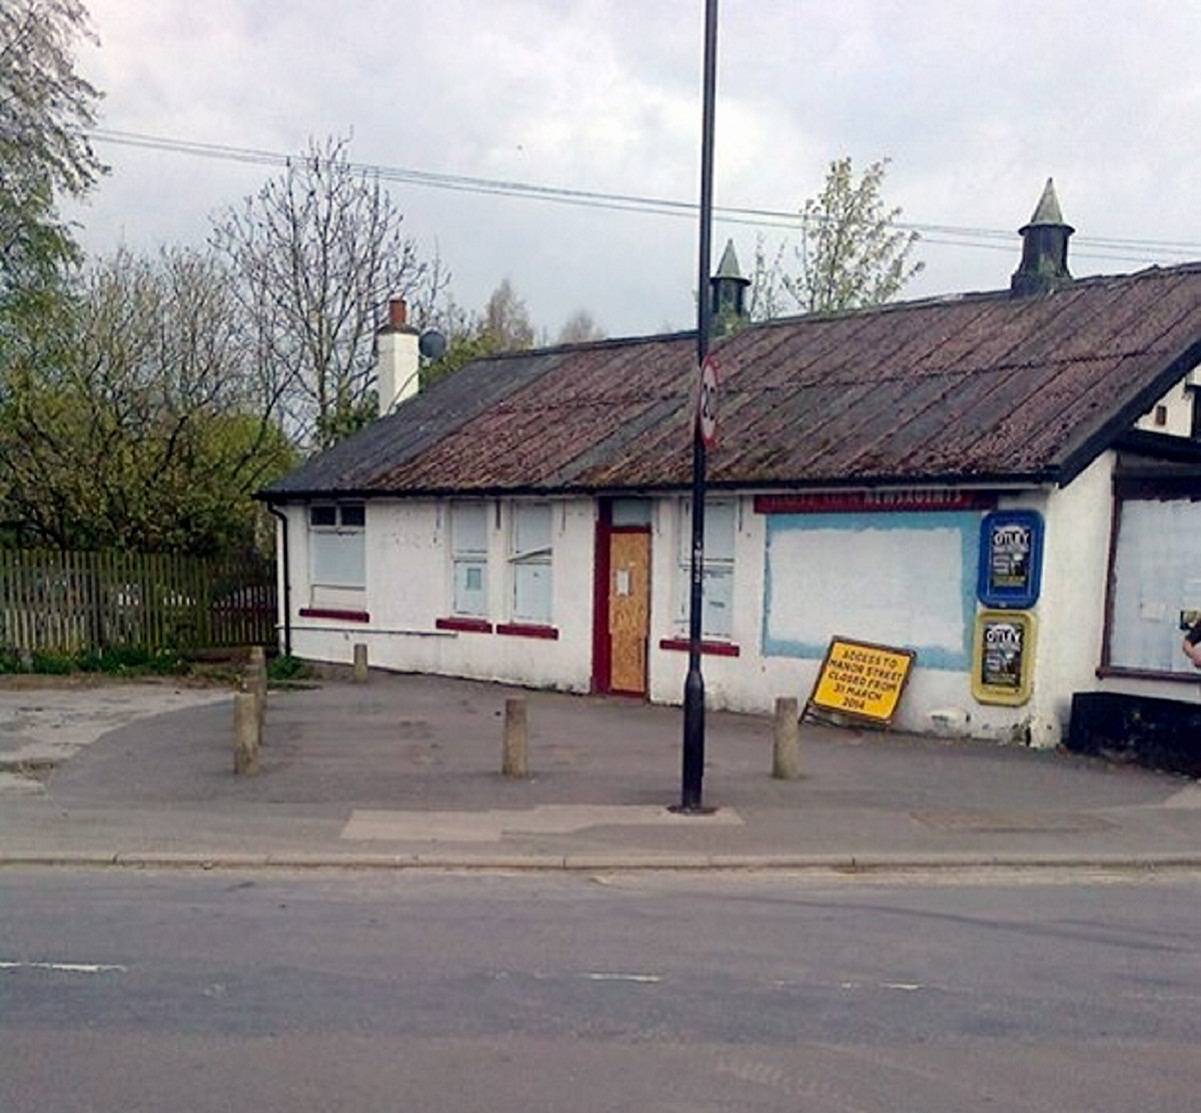 A sad and sorry state – a boarded-up Dunnies cafe on Easter Sunday, a time in years past it would have been very popular